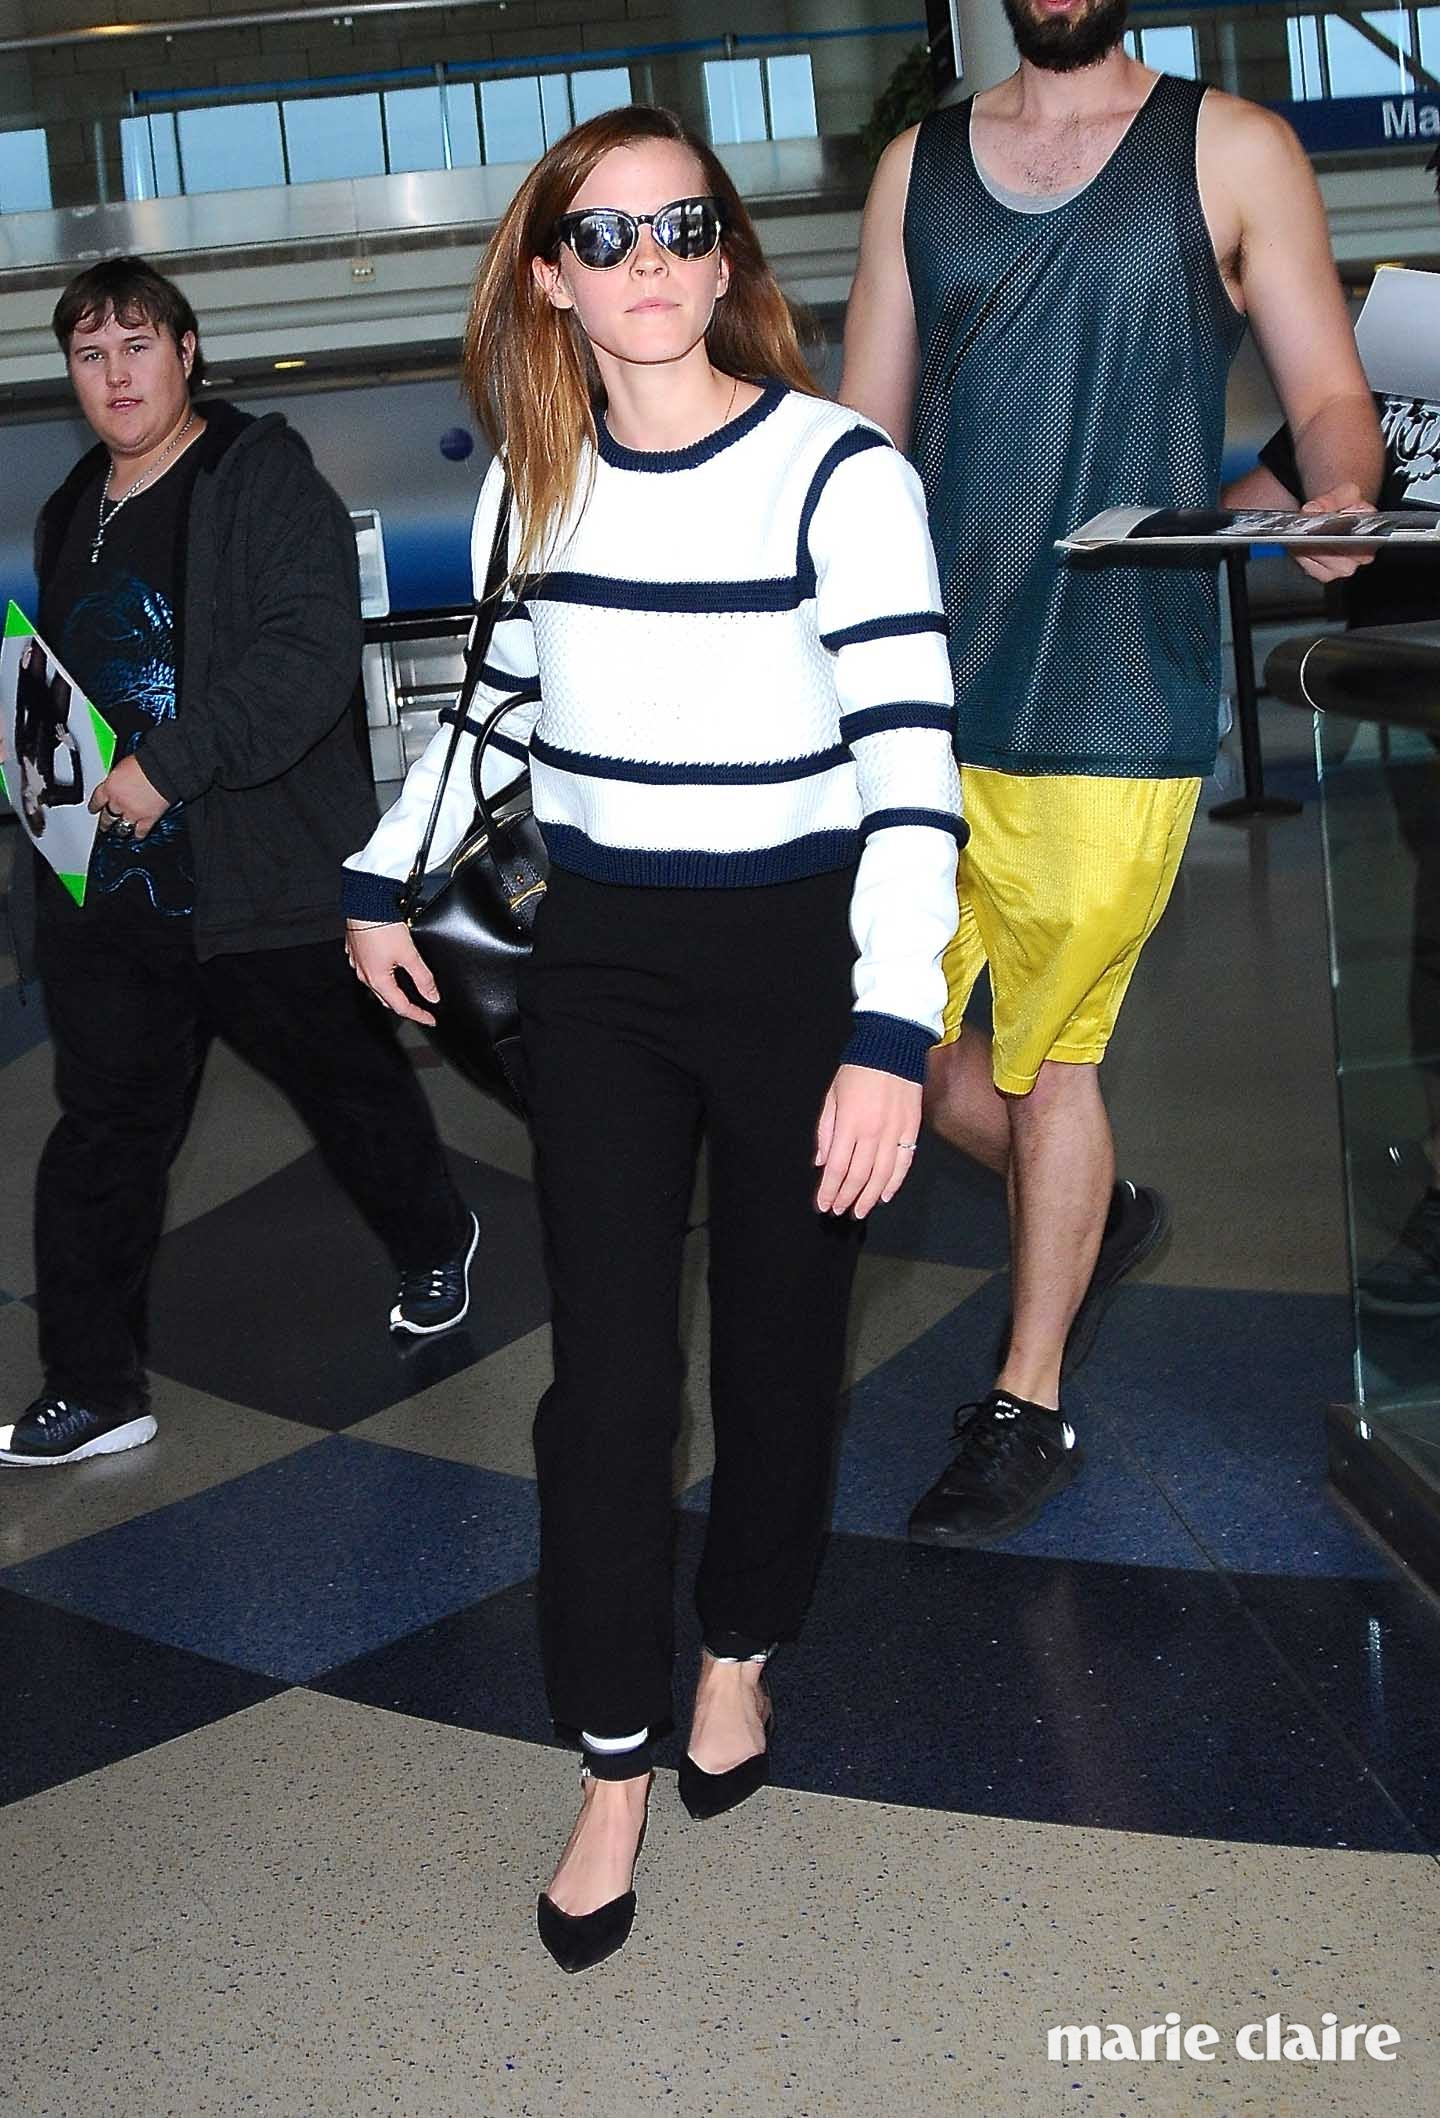 Emma Watson arrives at Los Angeles International Airport (LAX) in flat pointed shoes and stripe top Featuring: Emma Watson Where: Los Angeles, California, United States When: 22 Apr 2015 Credit: WENN.com